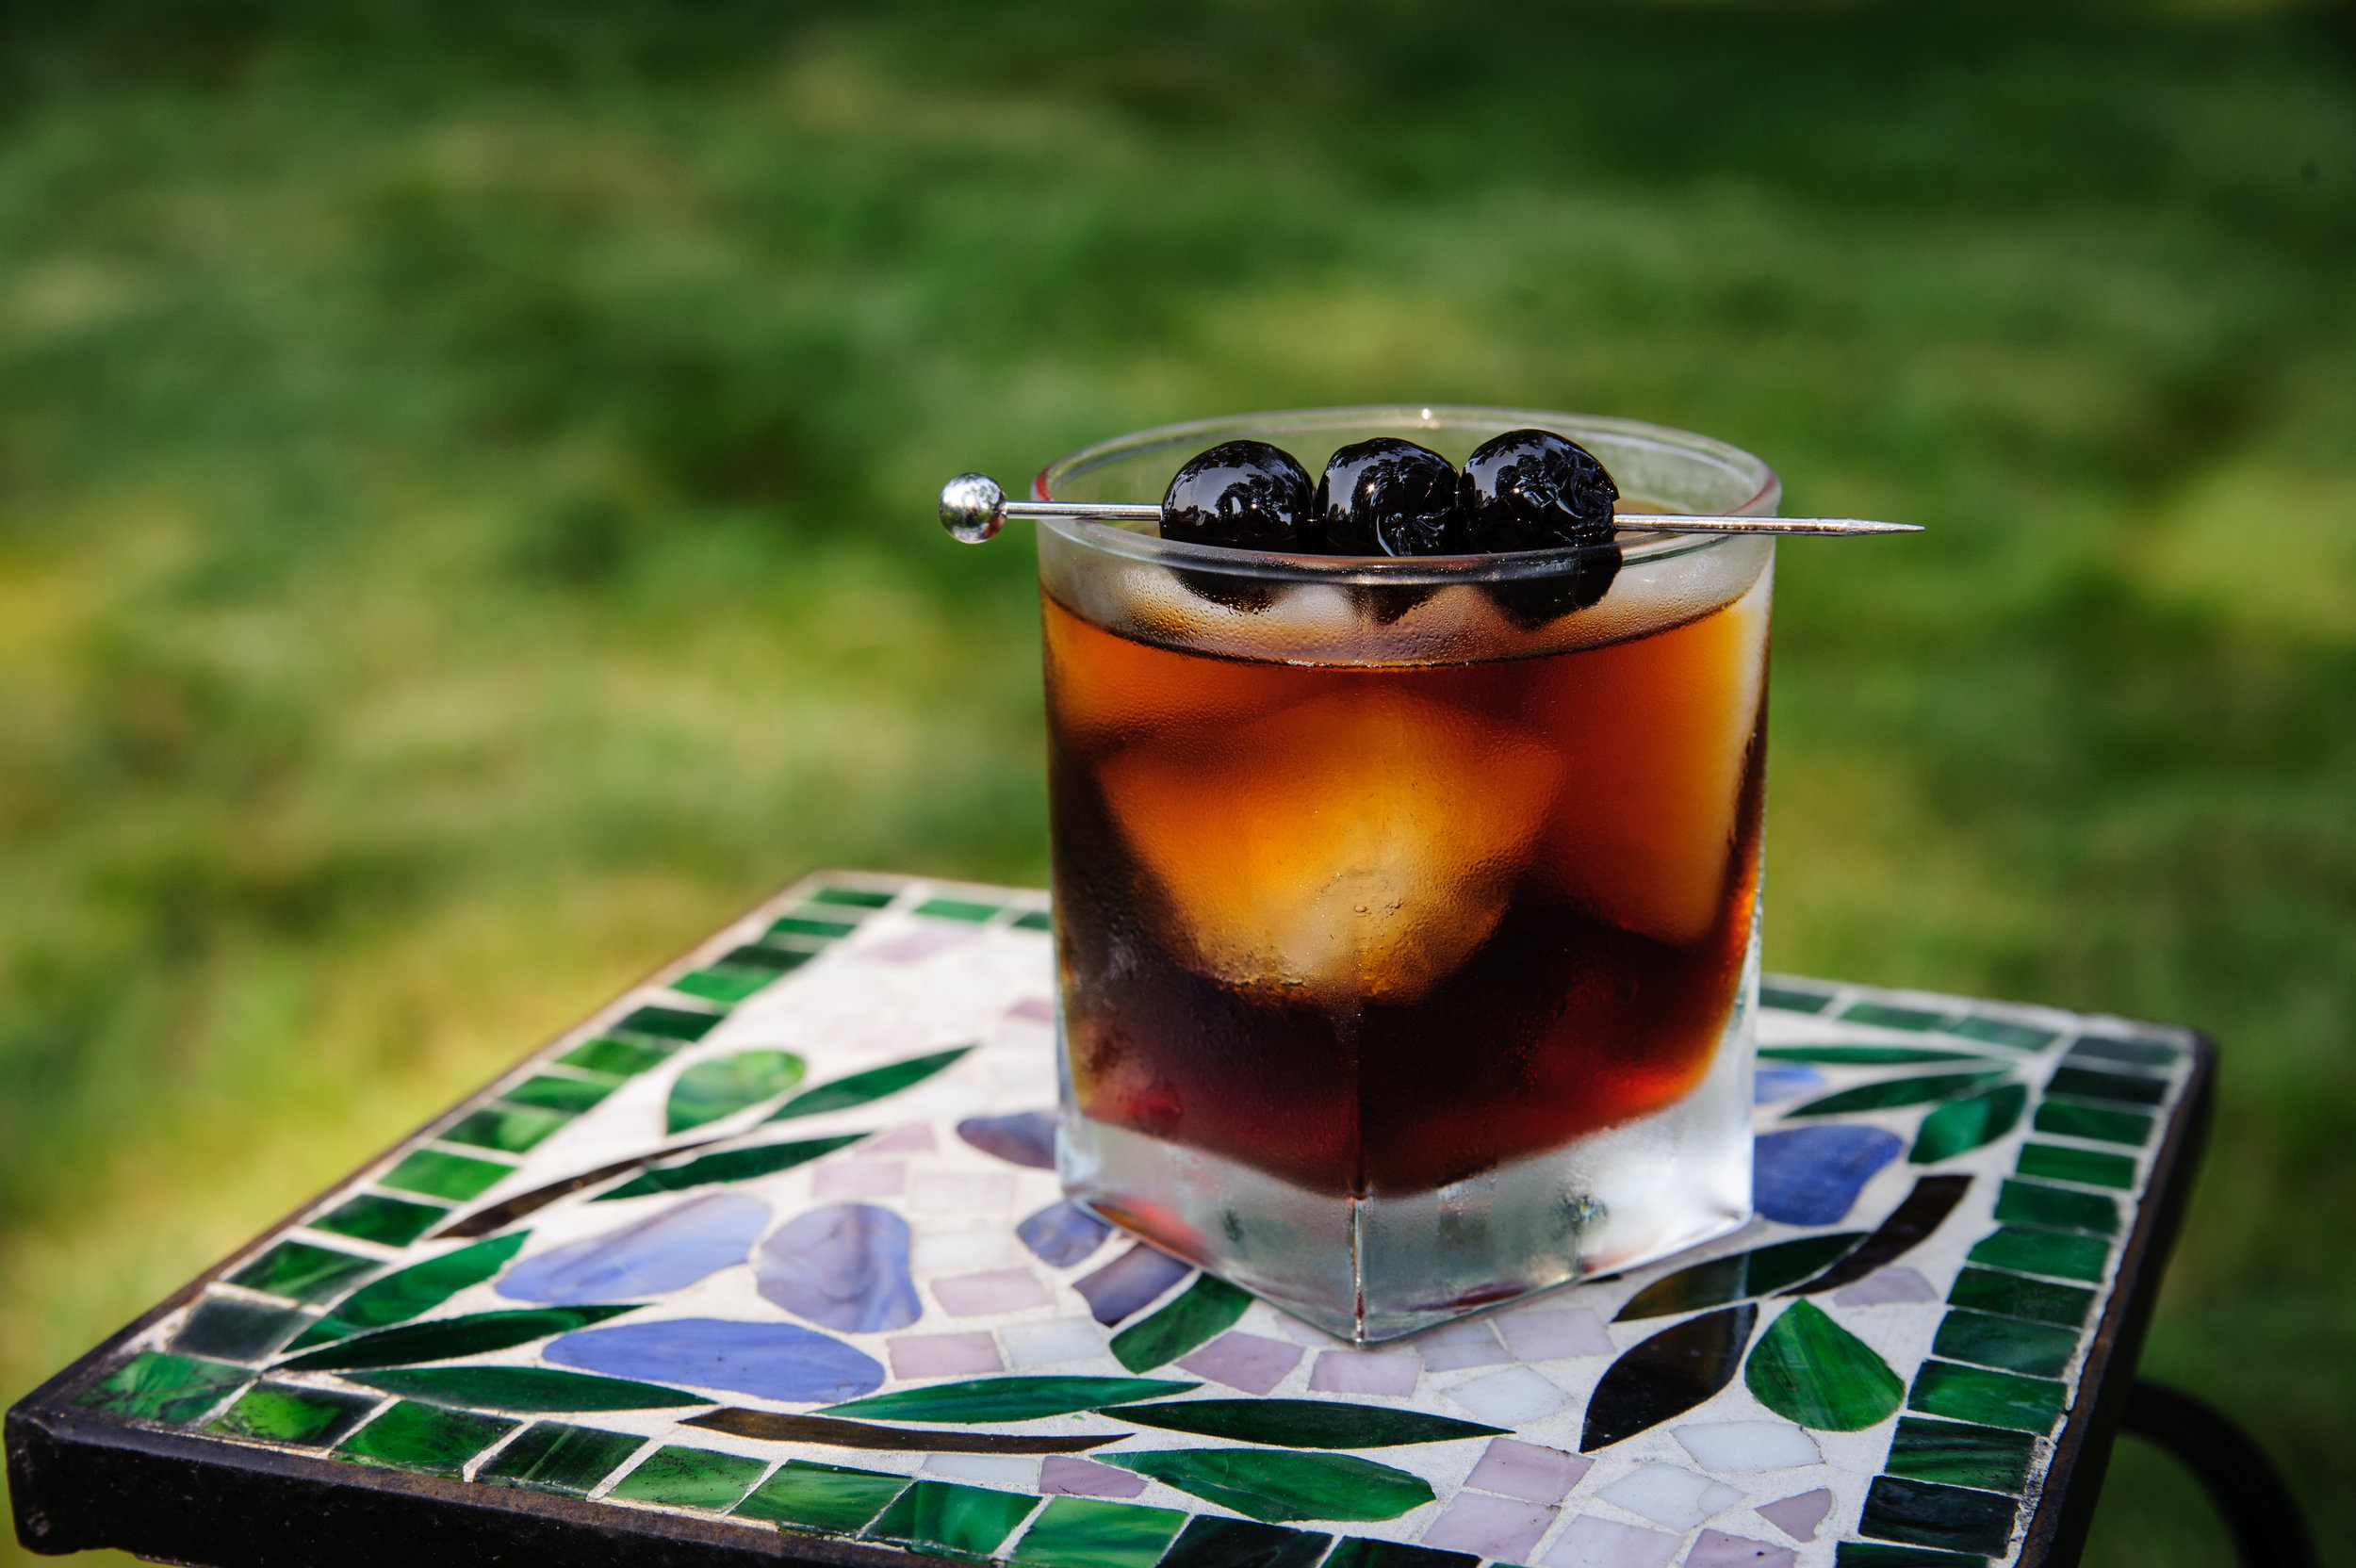 underneath bells crossing - 2 oz Wooden Boat Rum2 oz Cold brewed coffee (a dark blend)2 oz Sweet vermouth3-5 shakes of chocolate bittersStir with ice in mixing glass (30-40 stirs) Strain over fresh ice in chilled rocks glass.Garnish with 3 cherry's